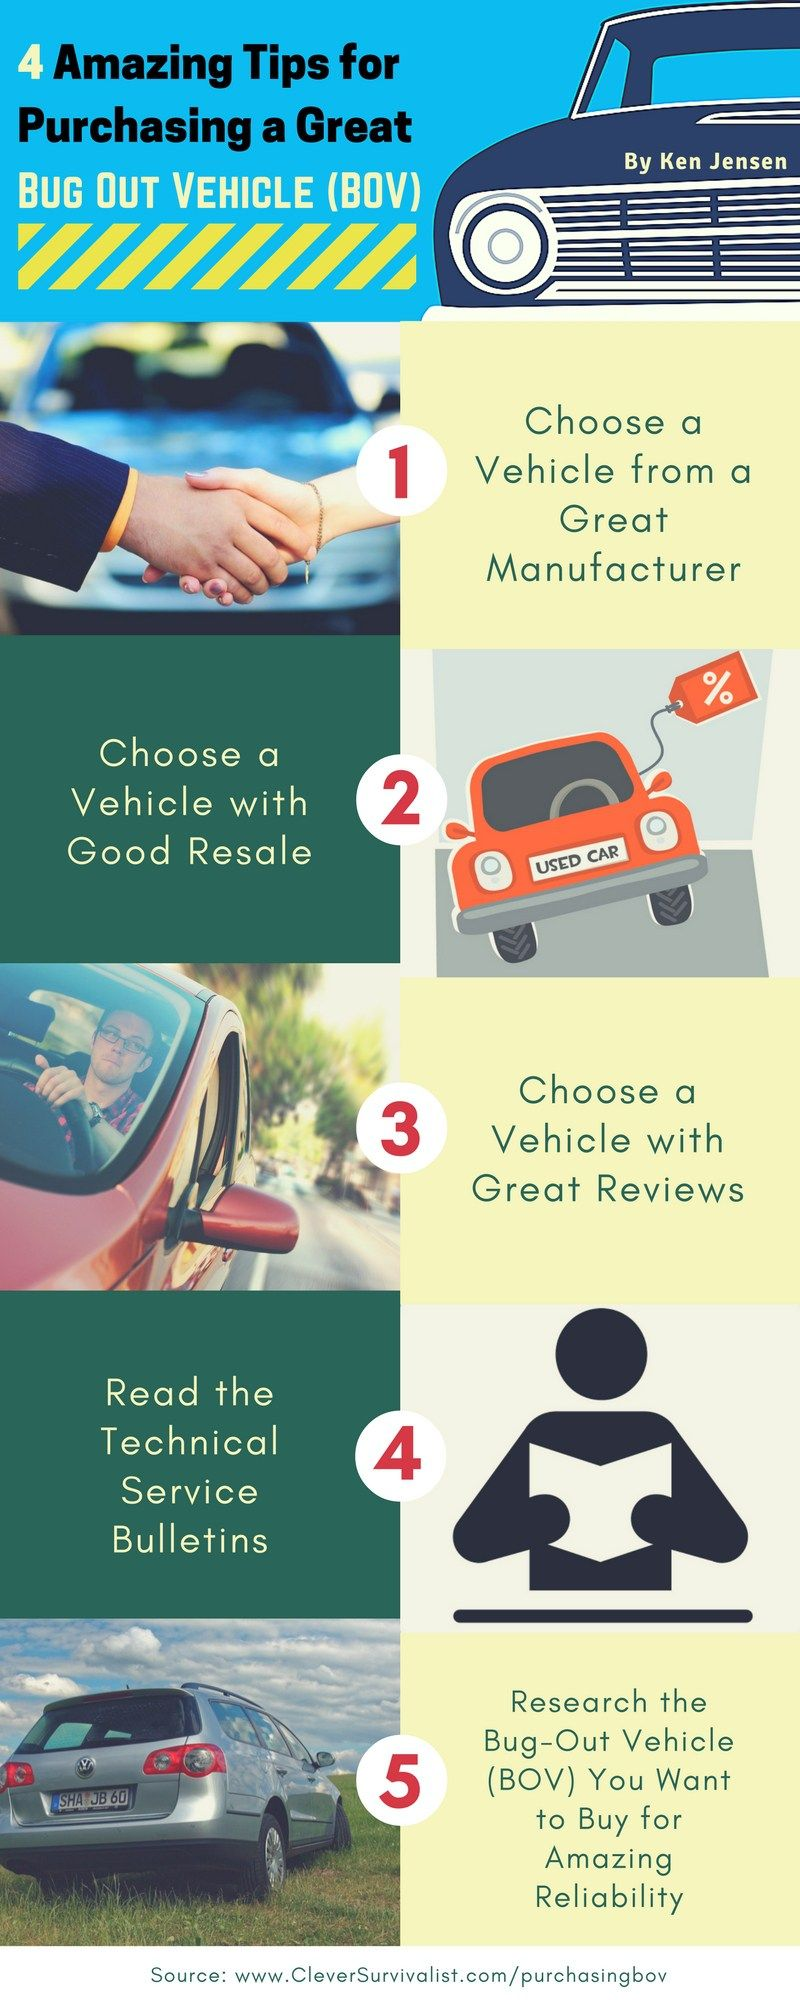 4 Amazing Tips for Purchasing a Great Bug Out Vehicle (BOV